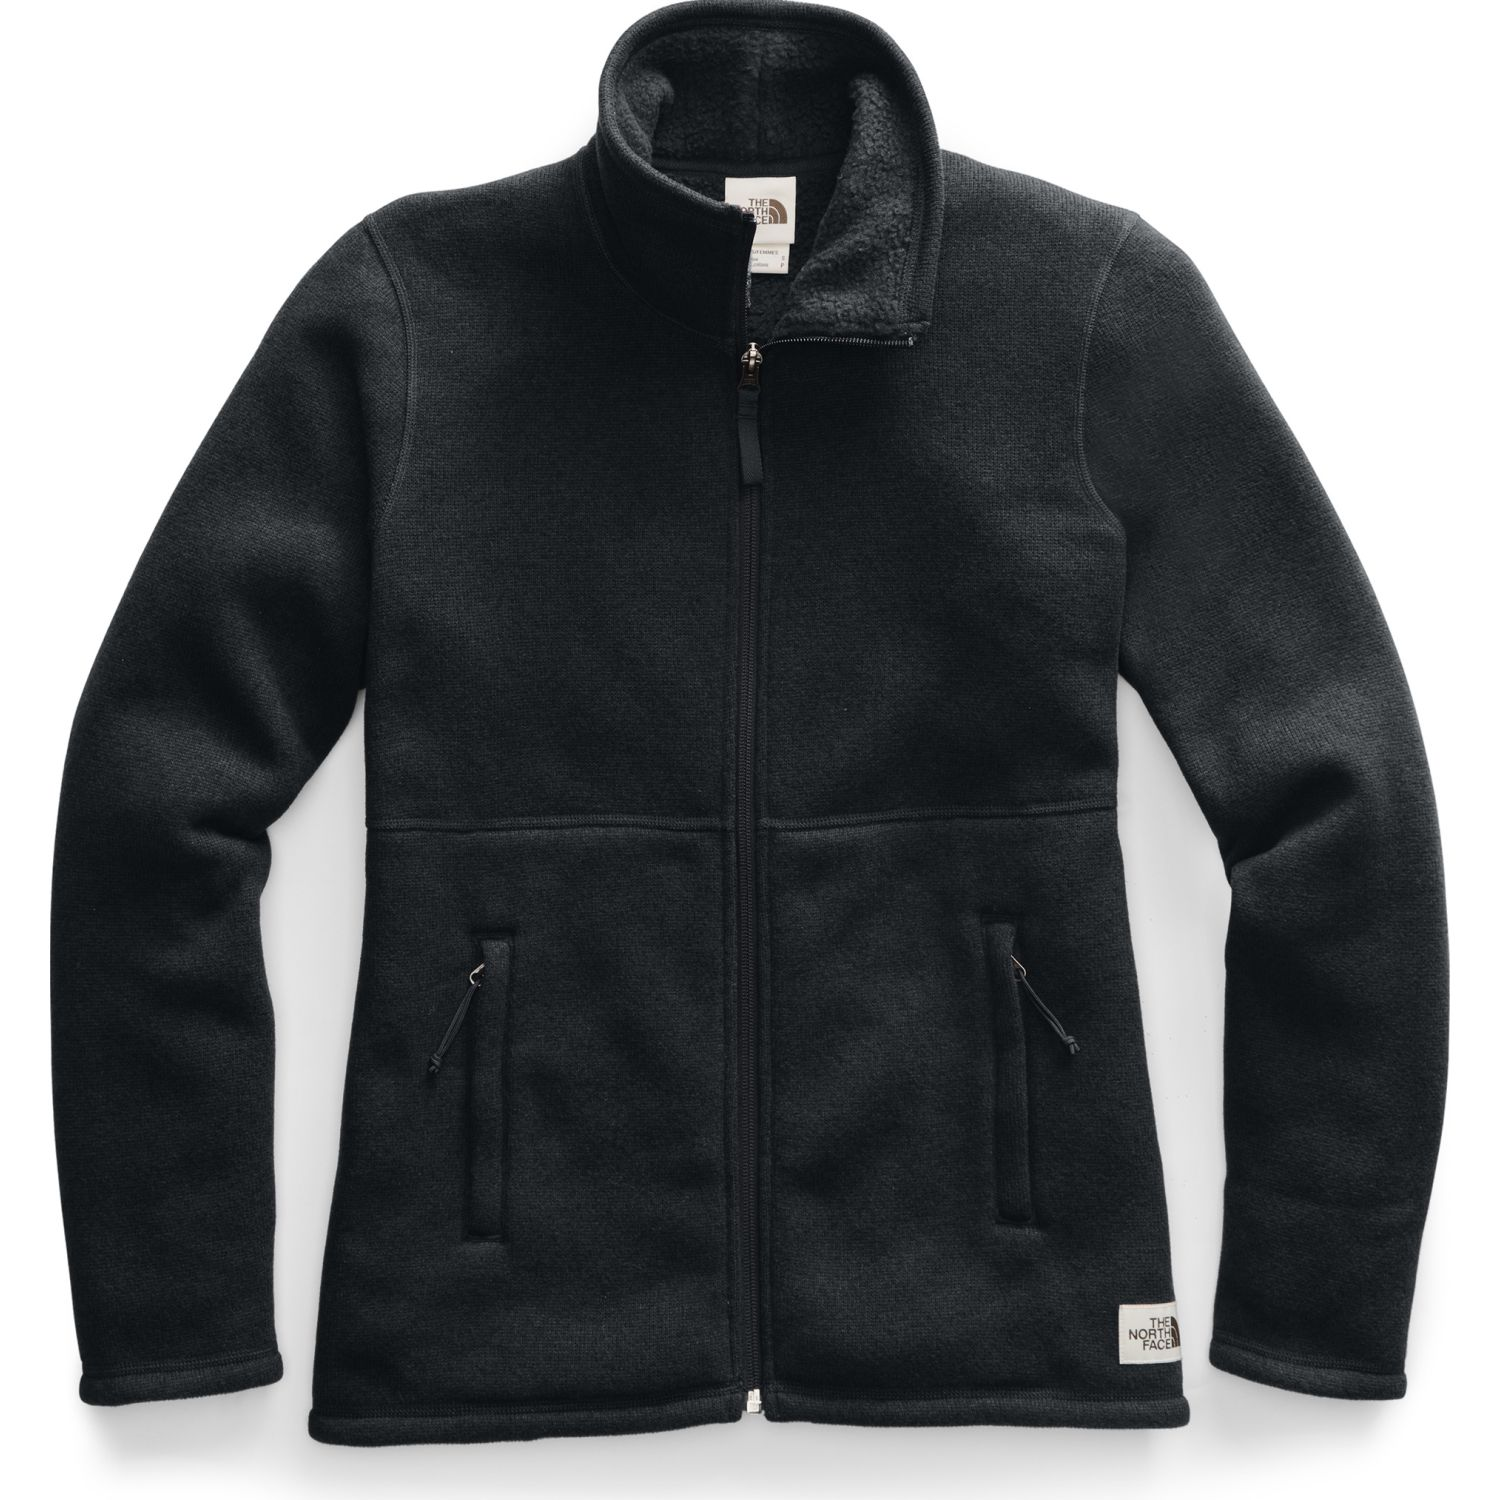 The North Face w crescent full-zip Negro Pullovers